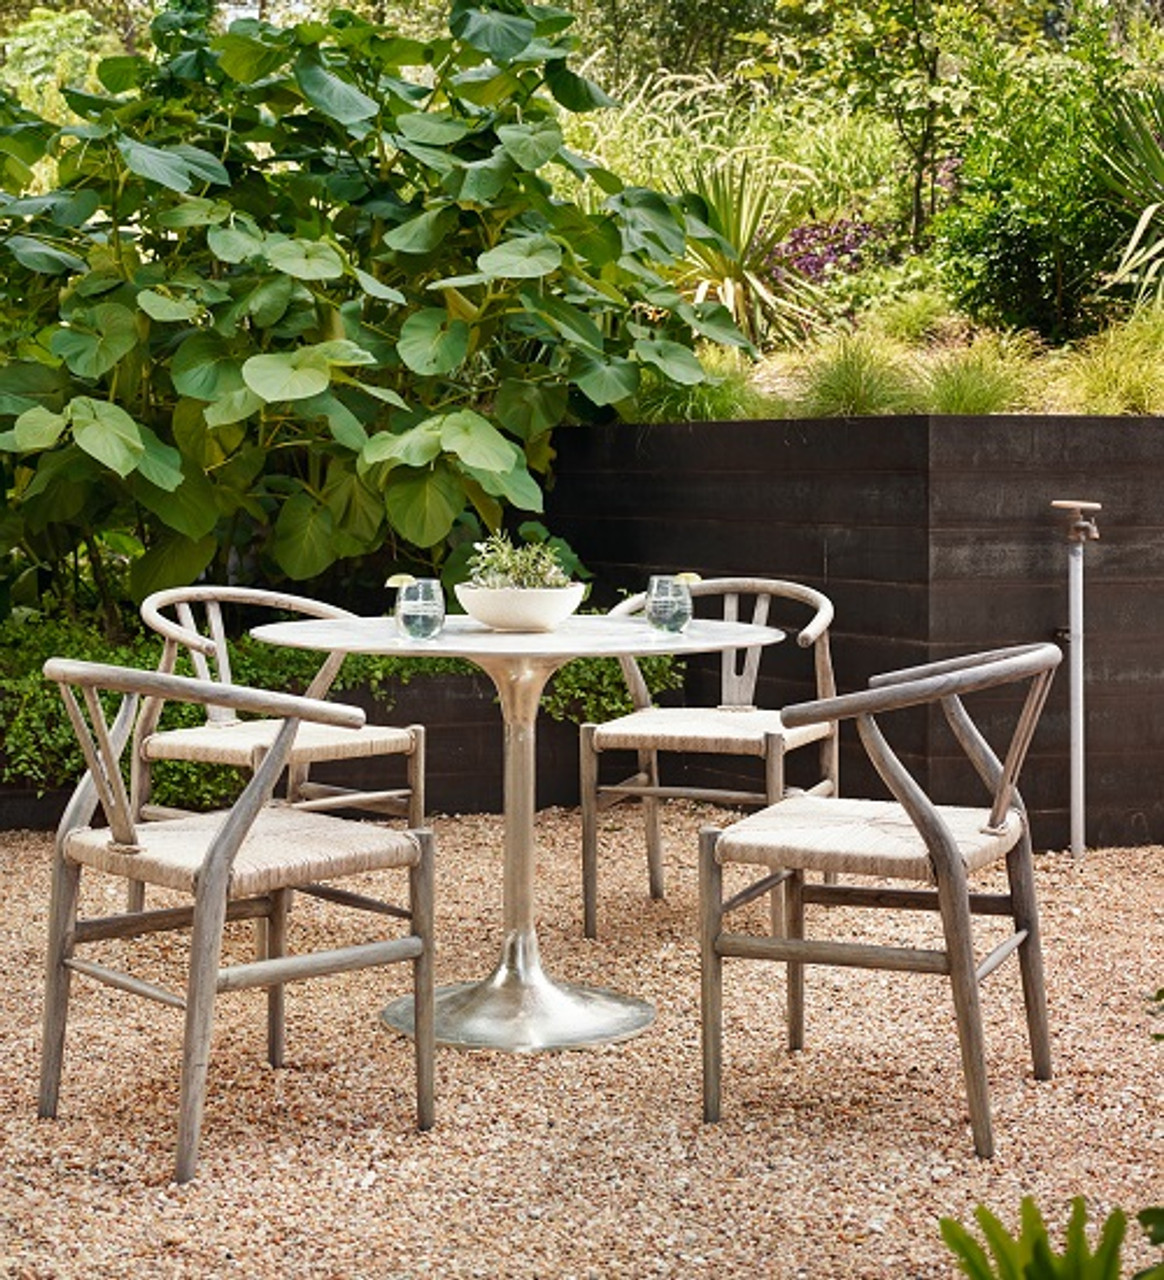 small space patio furniture cool ideas to try - Small Space Patio Furniture